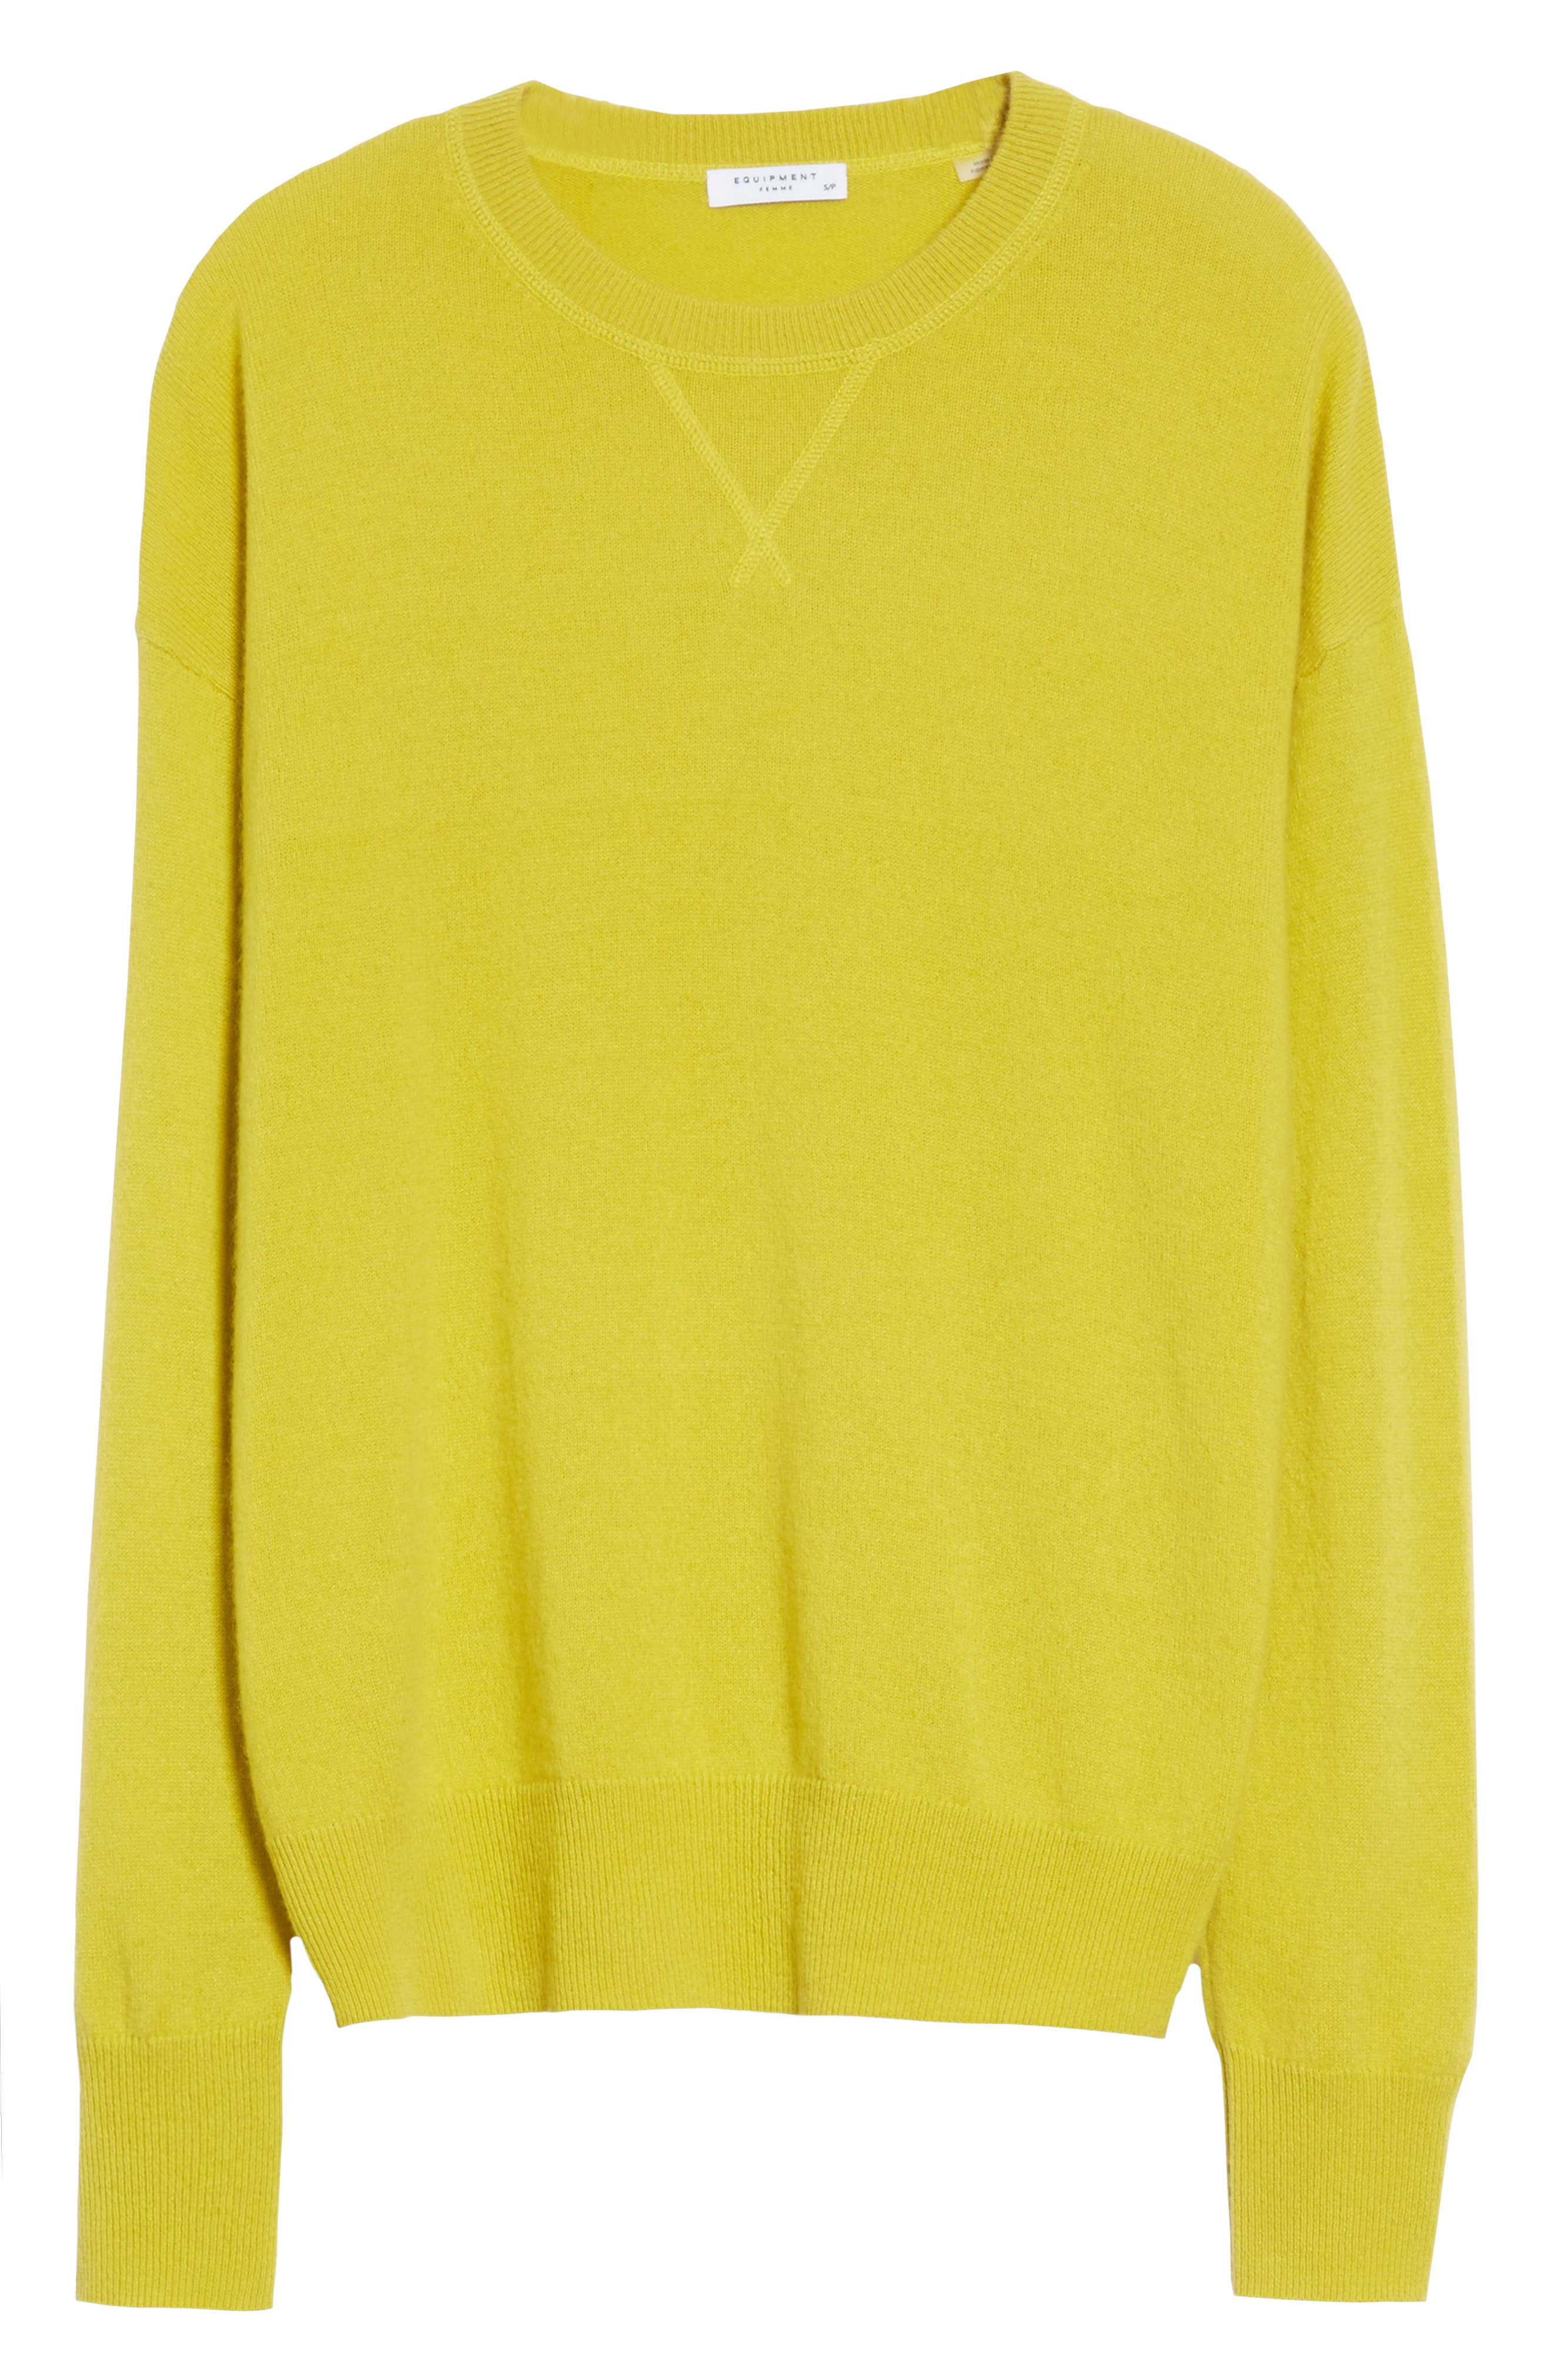 Renee Cashmere Sweatshirt,                             Alternate thumbnail 6, color,                             Bright Side